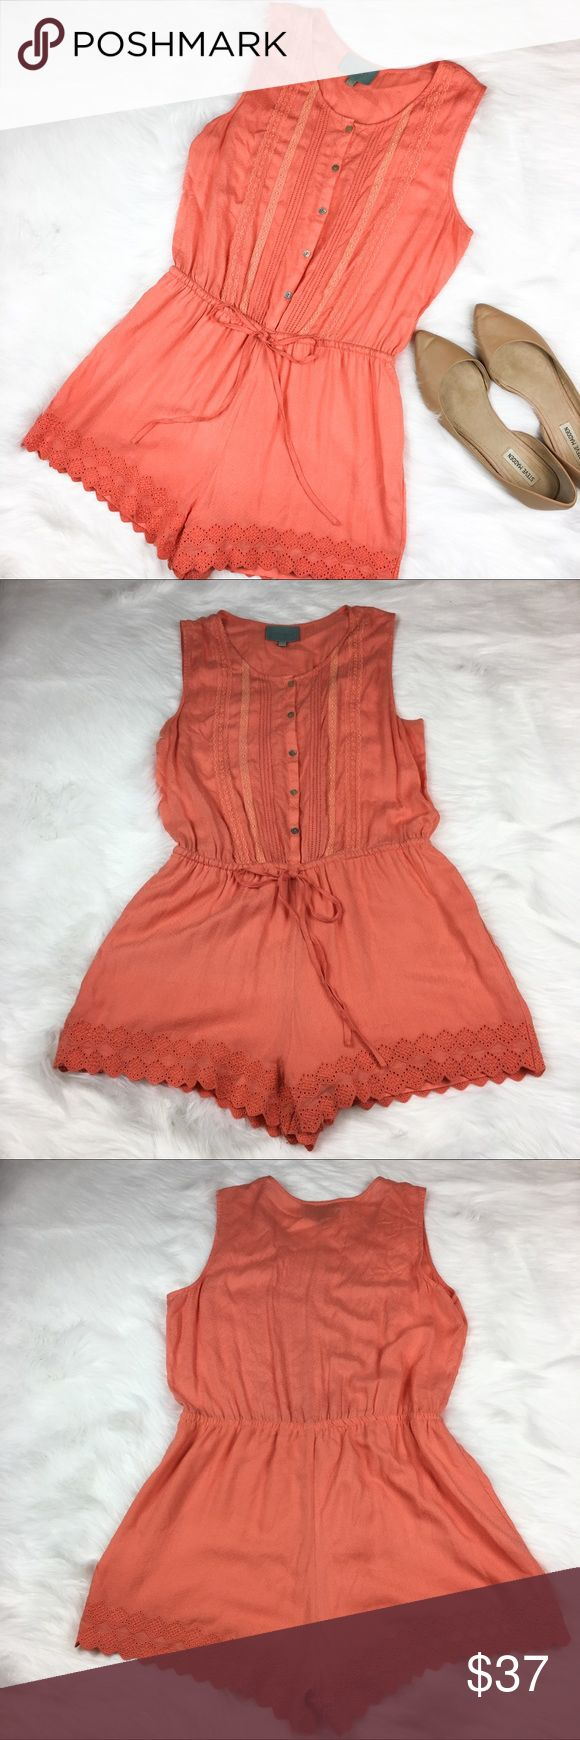 Stitch Fix Skies Are Blue Orange Romper Stitch Fix brand Skies Are Blue orange romper. Size medium. Approximate measurements flat laid are 31' long, 2' inseam, 14' drawstring waist (can be let in and out measurement take slightly pulled and tied) and 18' bust. GUC with no major flaws. Beautiful eyelet detail along bottom and lined bottoms. ❌No trades ❌ Modeling ❌No PayPal or off Posh transactions ❤️ I 💕Bundles ❤️Reasonable Offers PLEASE ❤️ Skies Are Blue Shorts